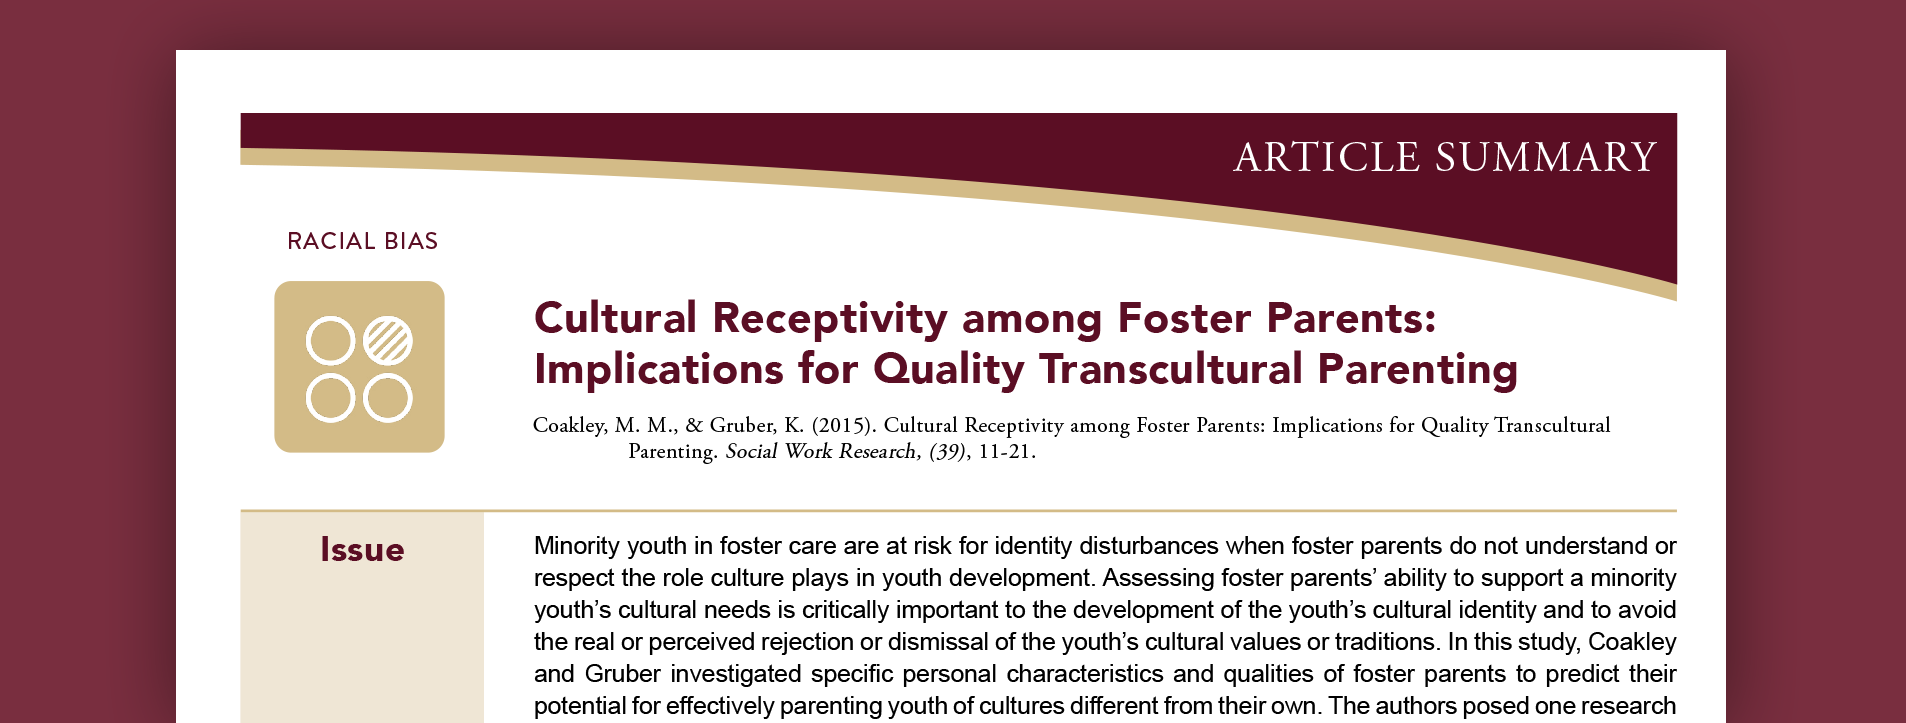 Cultural receptivity among foster parents: Implications for quality transcultural parenting.